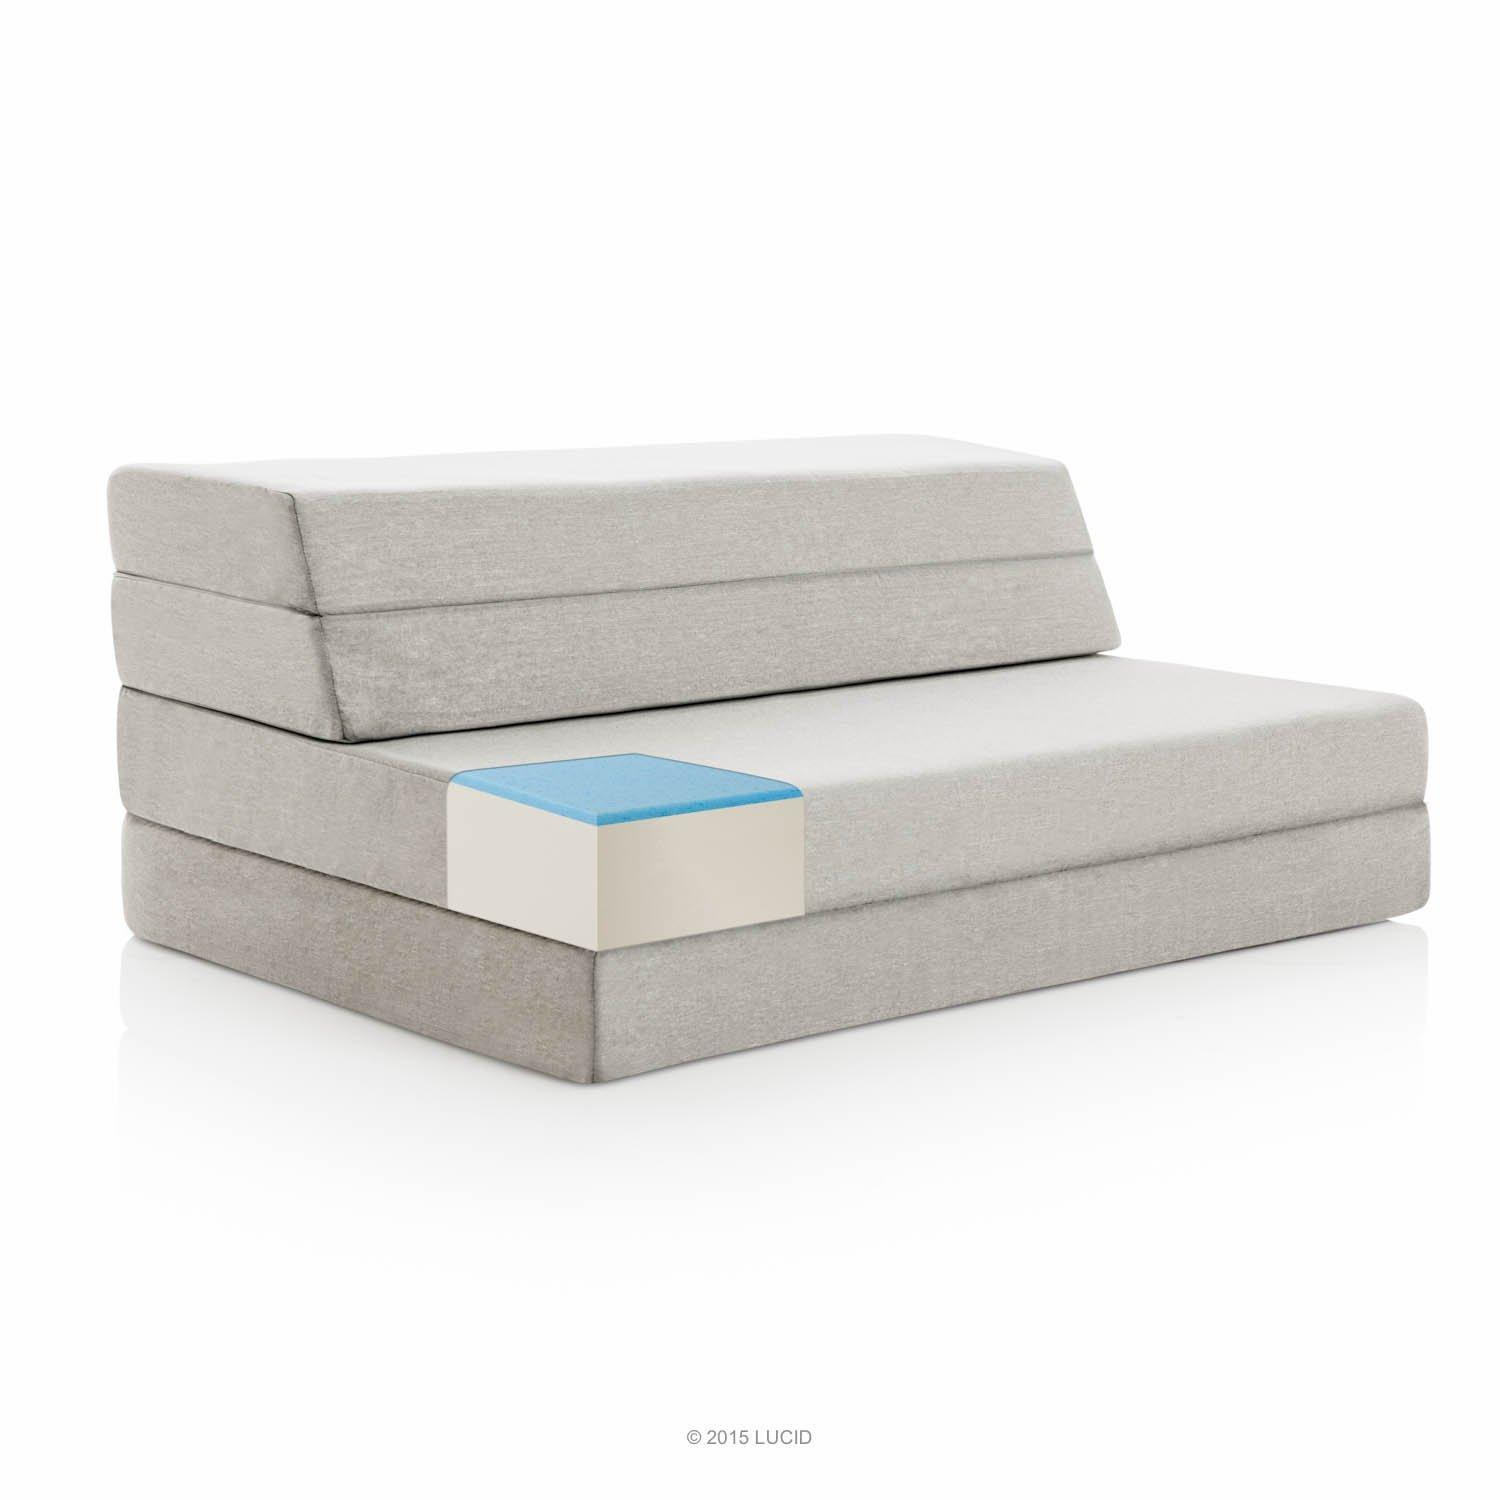 $79.99 LUCID 4 Inch Folding Mattress and Sofa with Removable Indoor